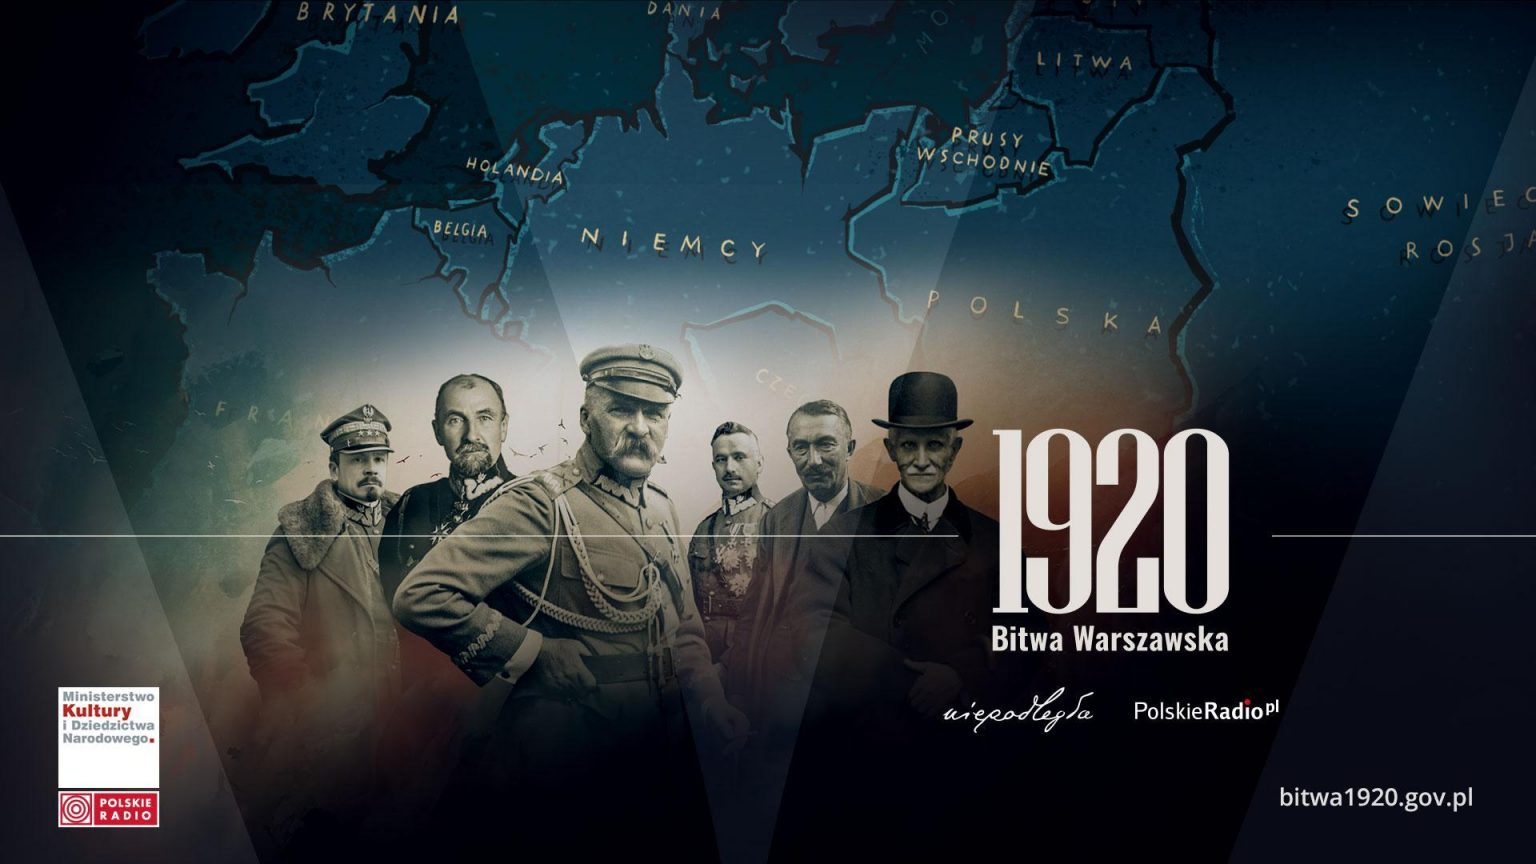 """A banner with portraits of the most important commanders during the 1920 Battle of Warsaw; in the background, a period map; on the right side, a large """"1920 Battle of Warsaw"""" inscription. The graphic also includes logos of the Polish Ministry of Culture and National Heritage, the Polish Radio, the Office of the """"Niepodległa"""" Programme, and the Polish Radio website, as well as the website address: bitwa1920.gov.pl"""